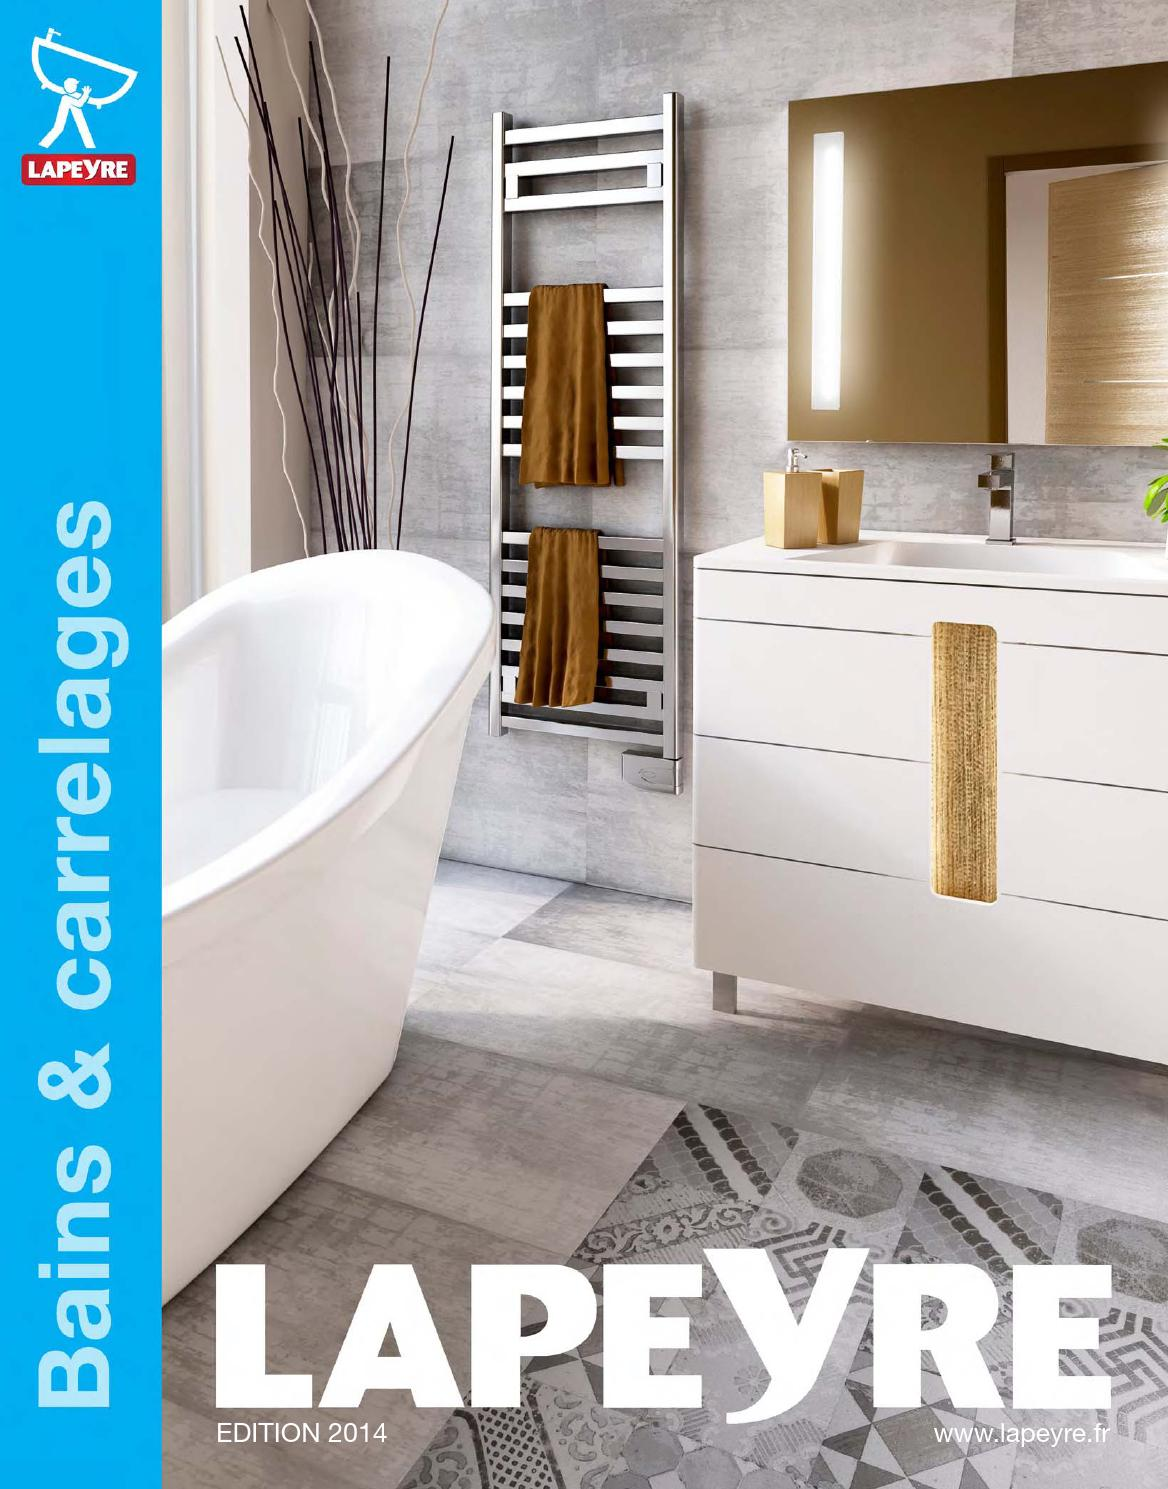 Catalogue lapeyre bains carrelages 2014 by joe monroe issuu - Lapeyre catalogue portes ...